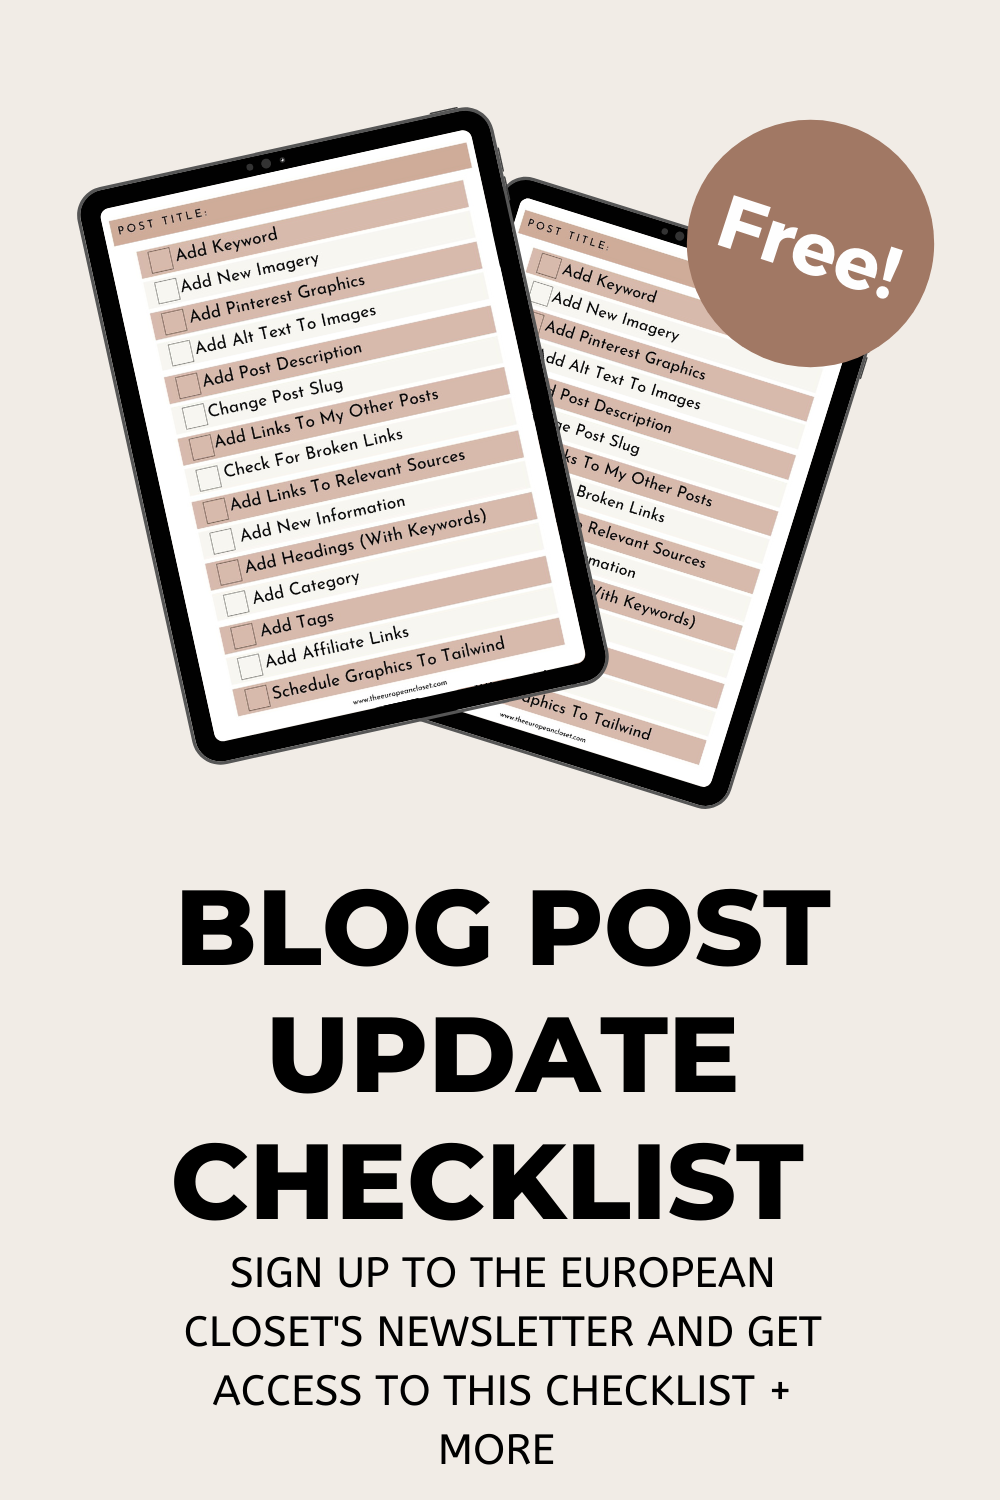 In today's post, I'll show ou how you can update old blog posts to make them drive traffic to your site. Oh, and there's a free checklist too!